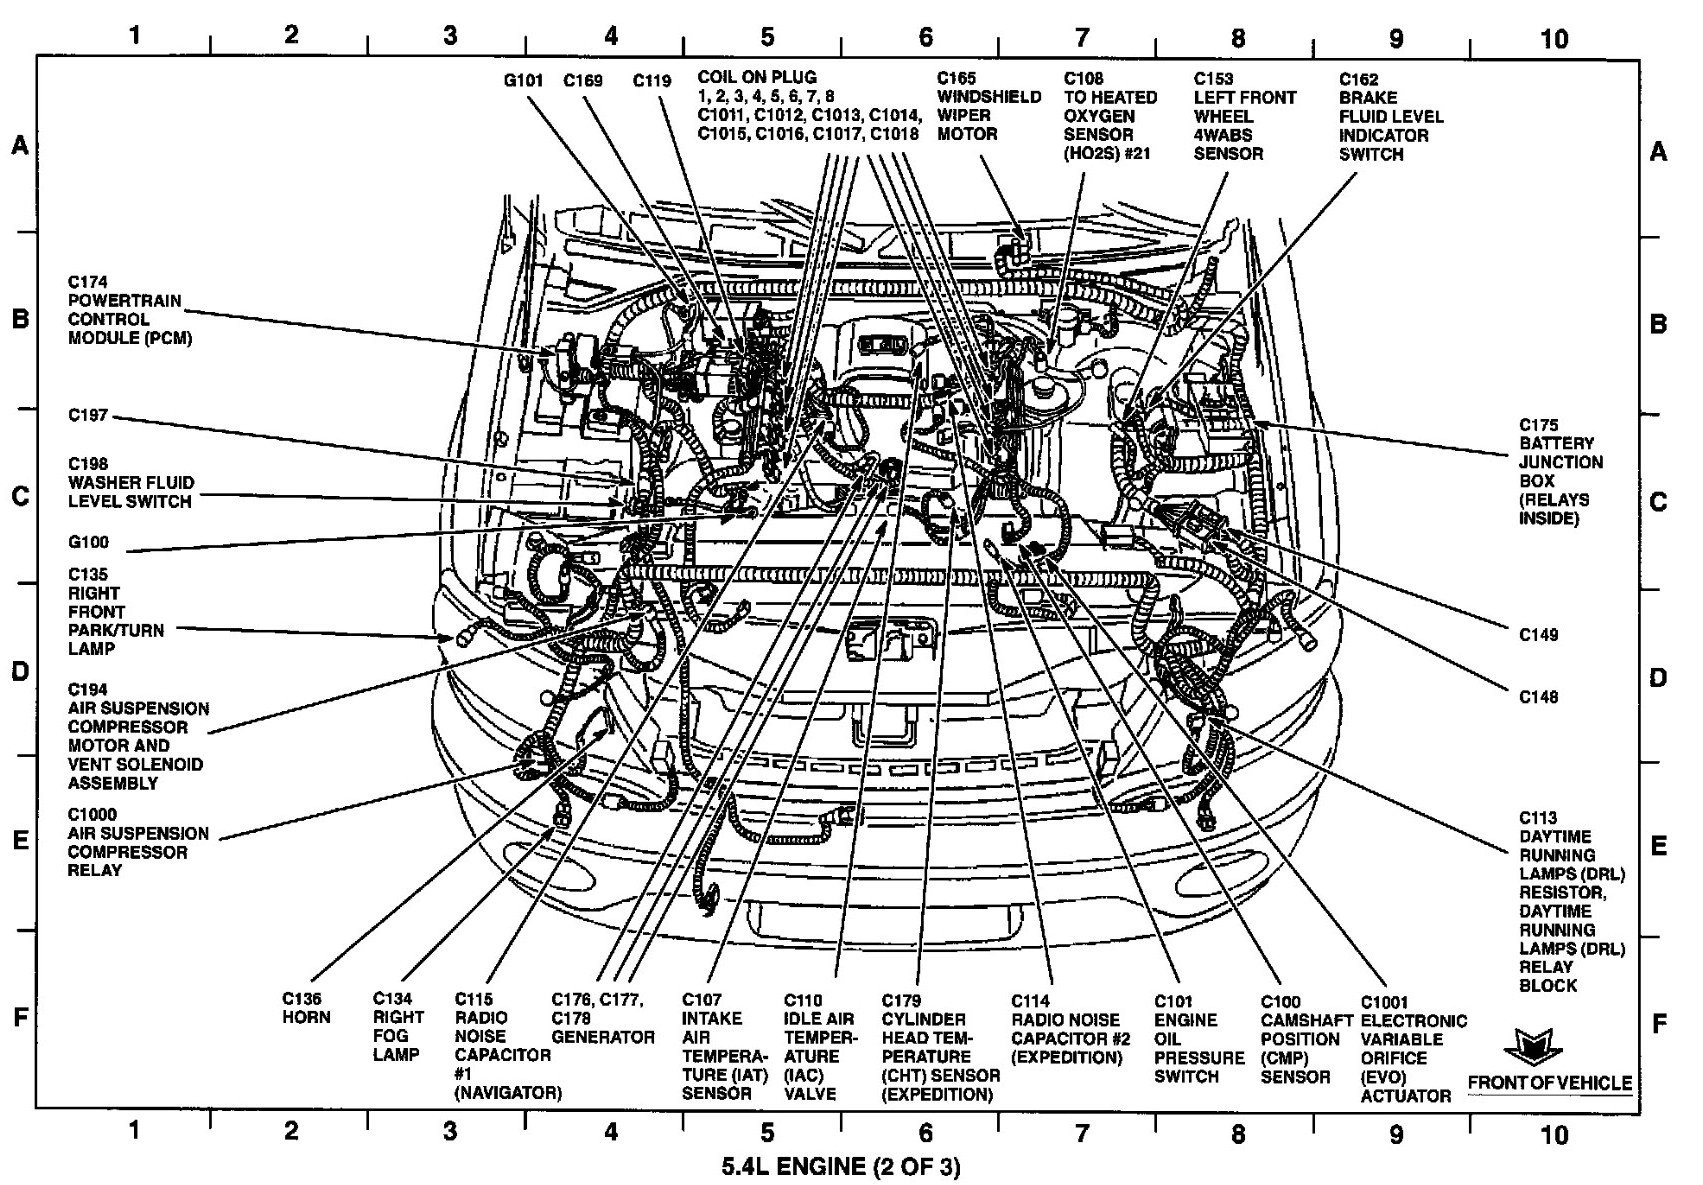 2002 Jeep Liberty Engine Diagram 2008 Bmw 328i Engine Diagram Bmw Wiring Diagrams Instructions Of 2002 Jeep Liberty Engine Diagram